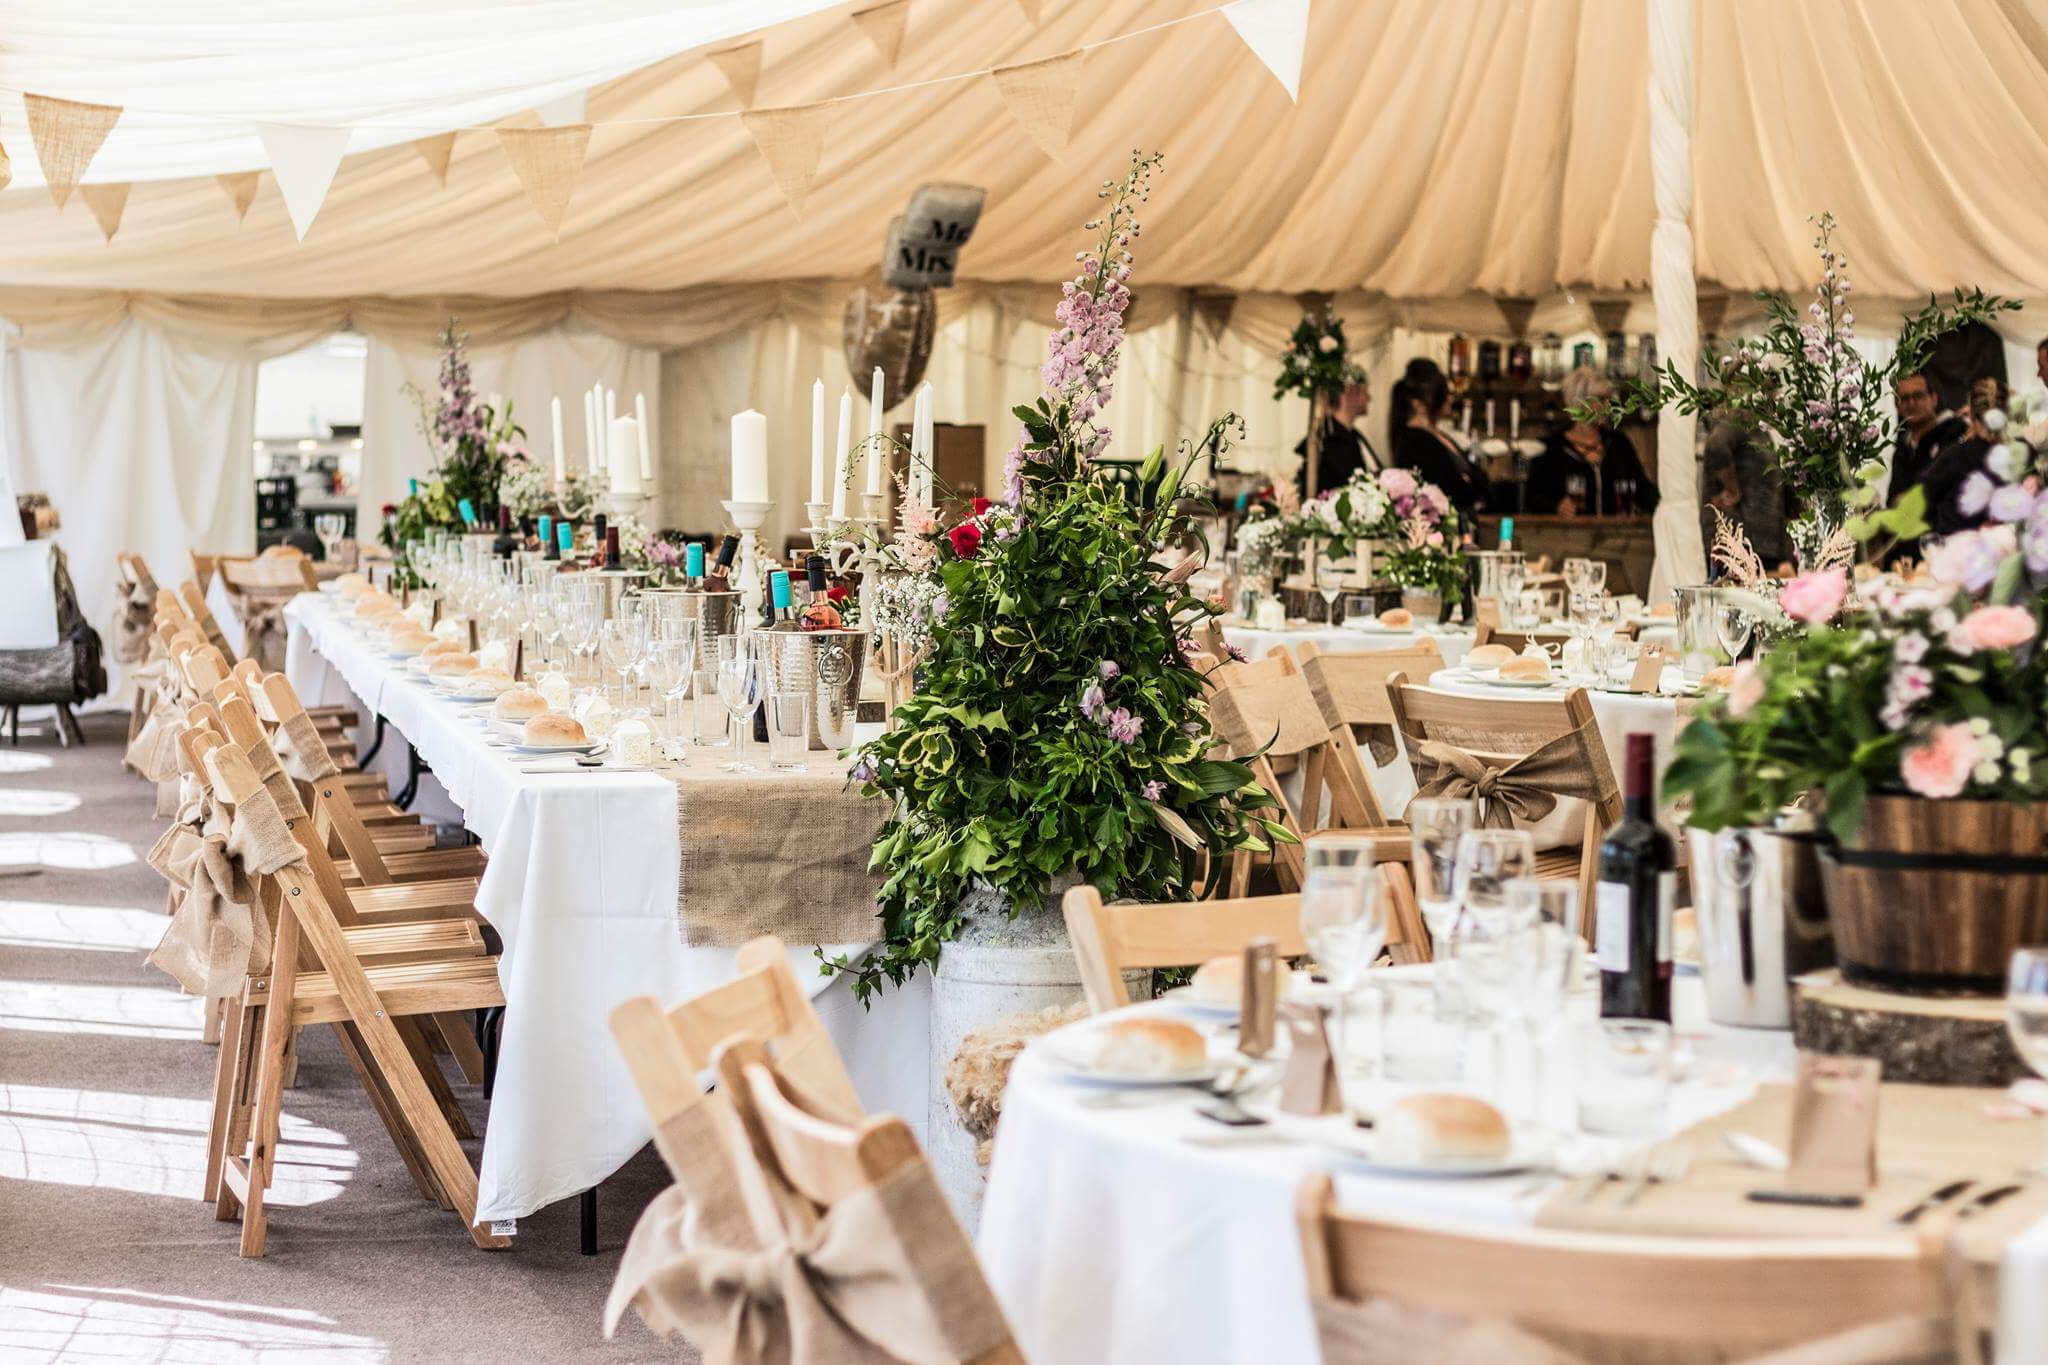 Outdoor wedding under tent decorated in beige, white, and green